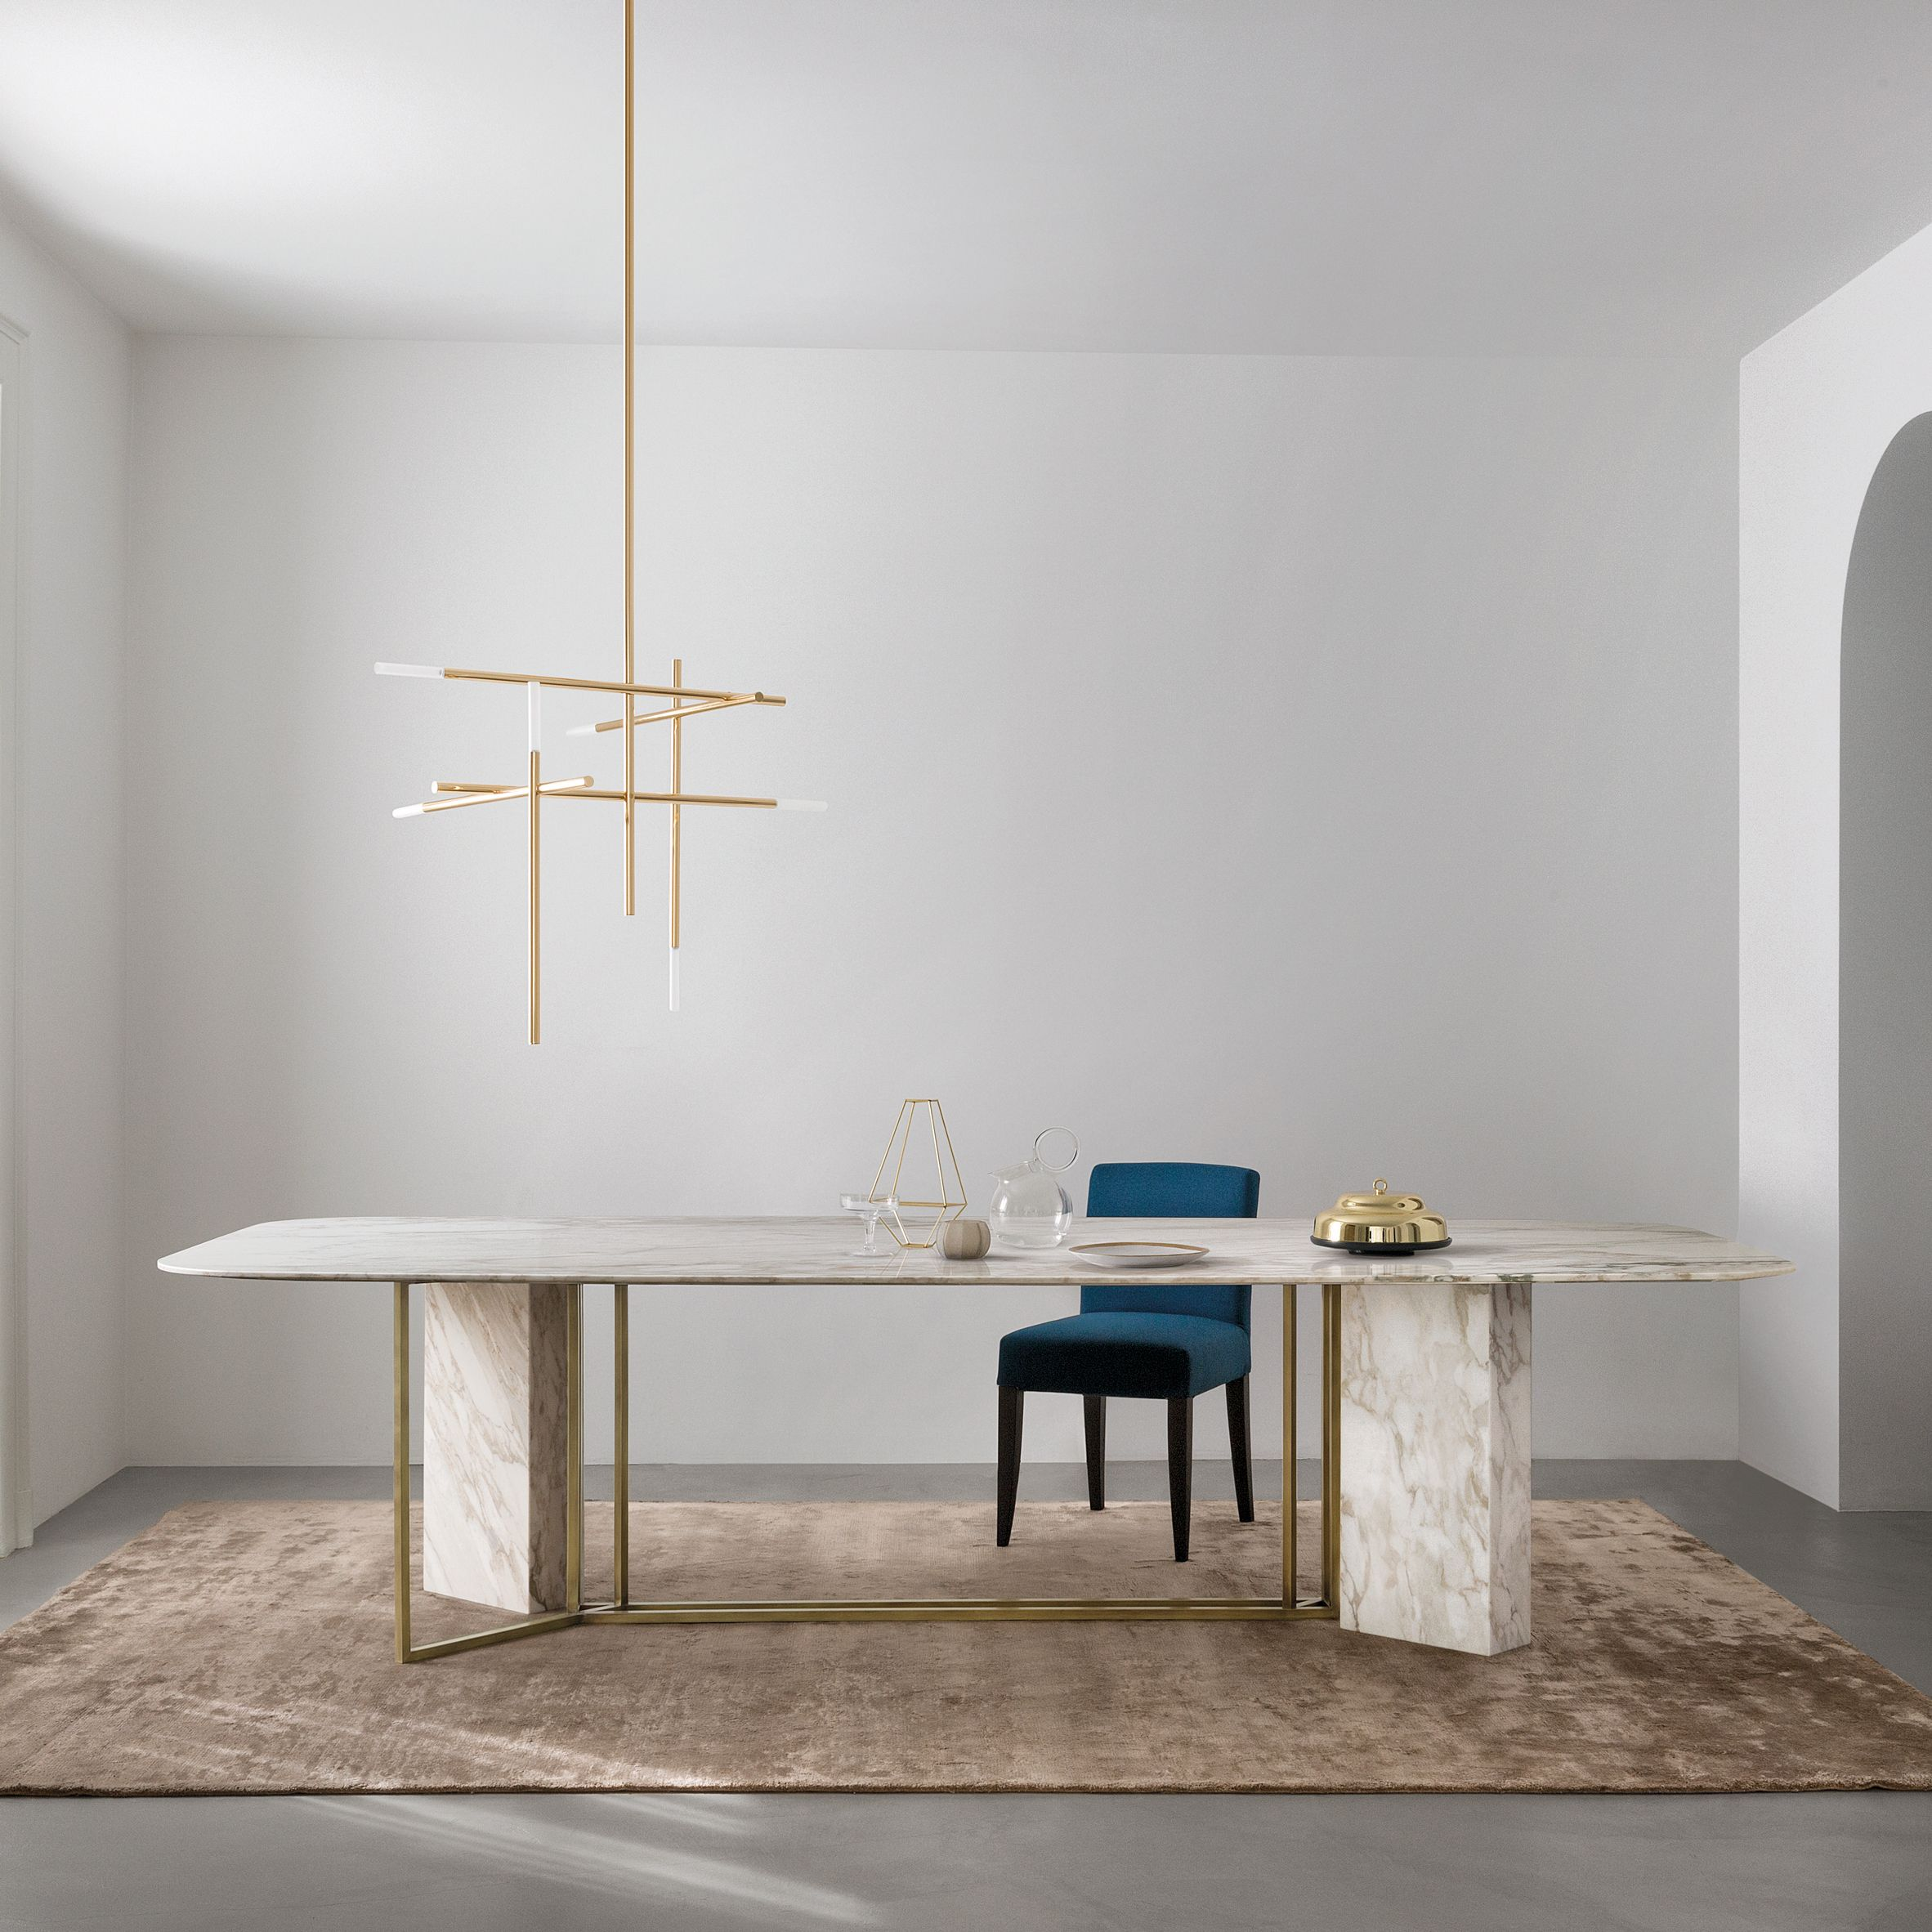 Italian brand meridiani has created the plinto collection for Esstisch italian design